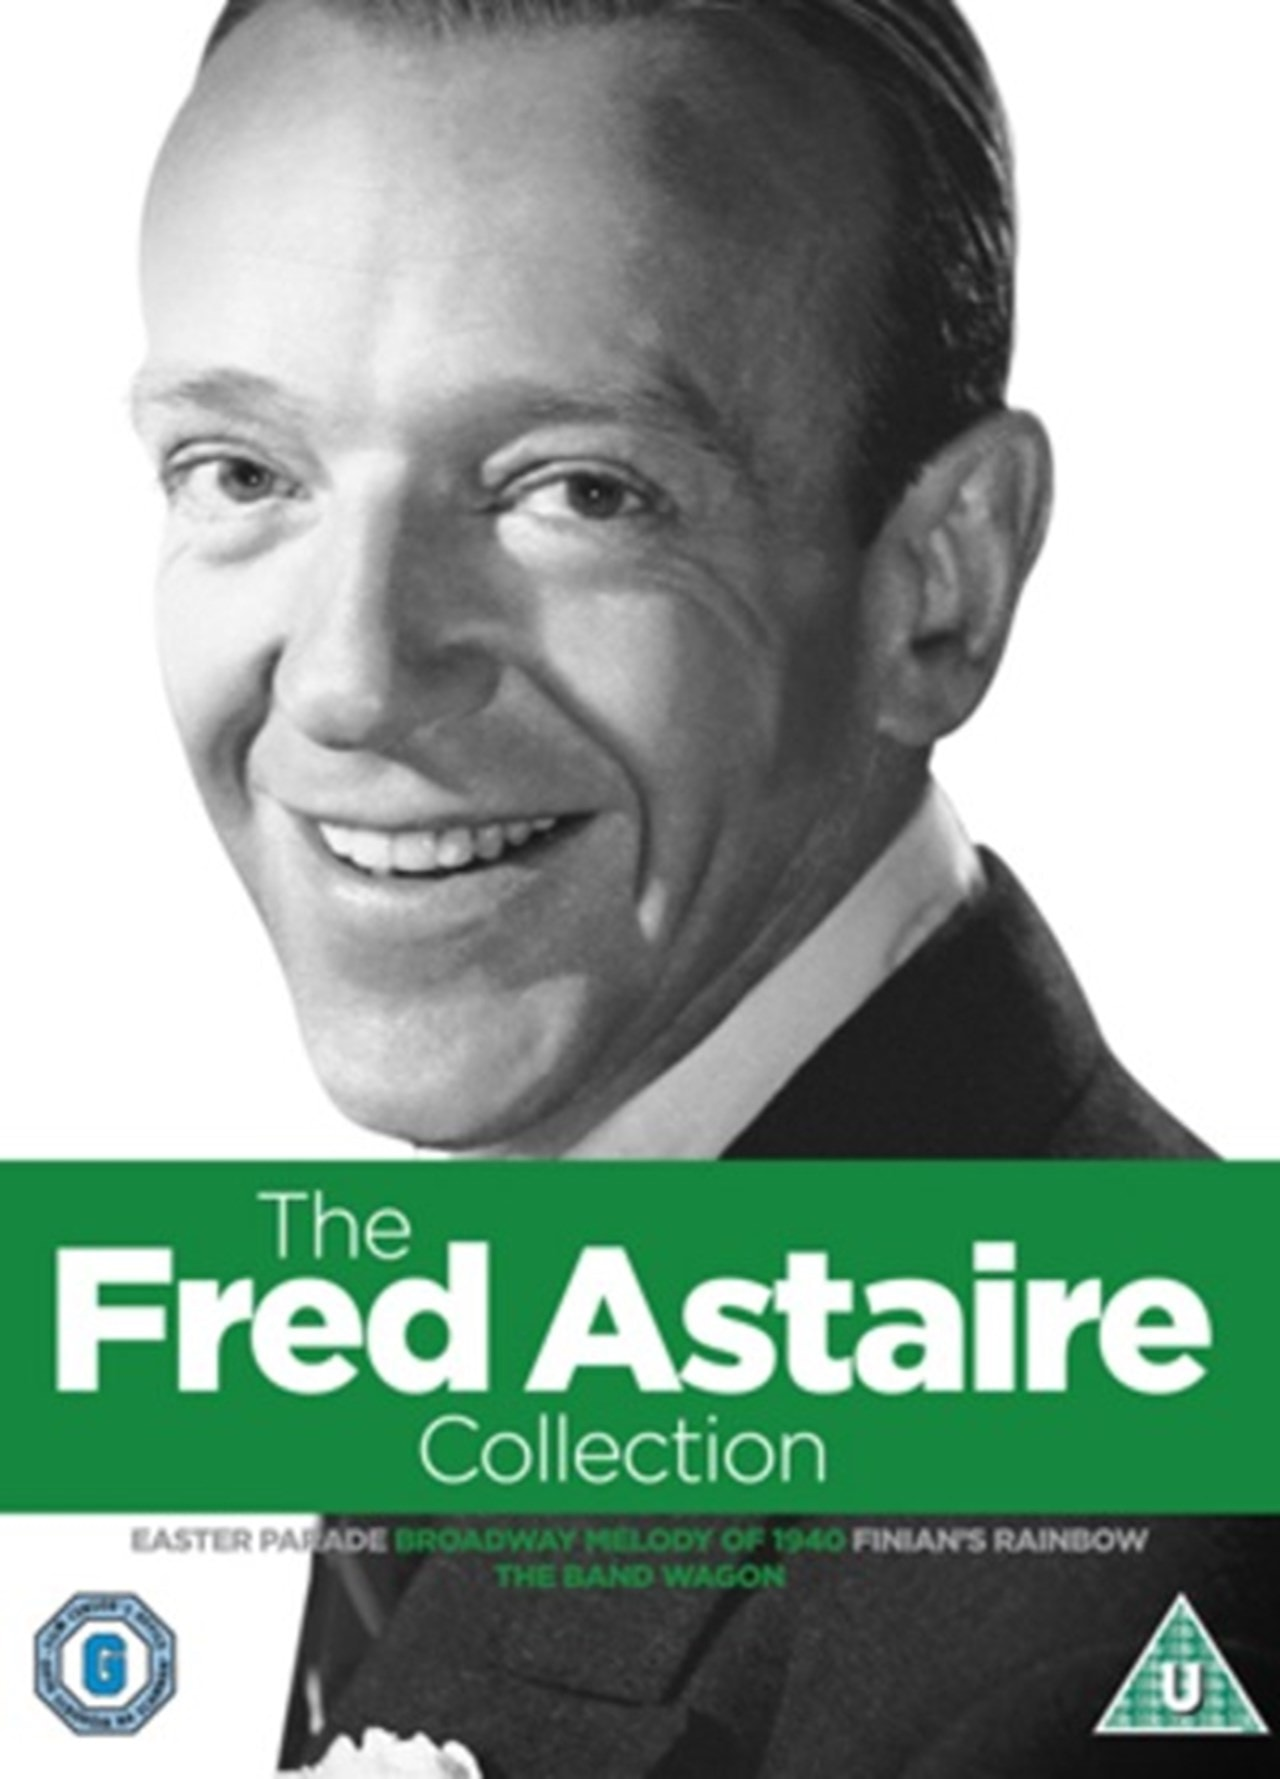 The Fred Astaire Collection - 1